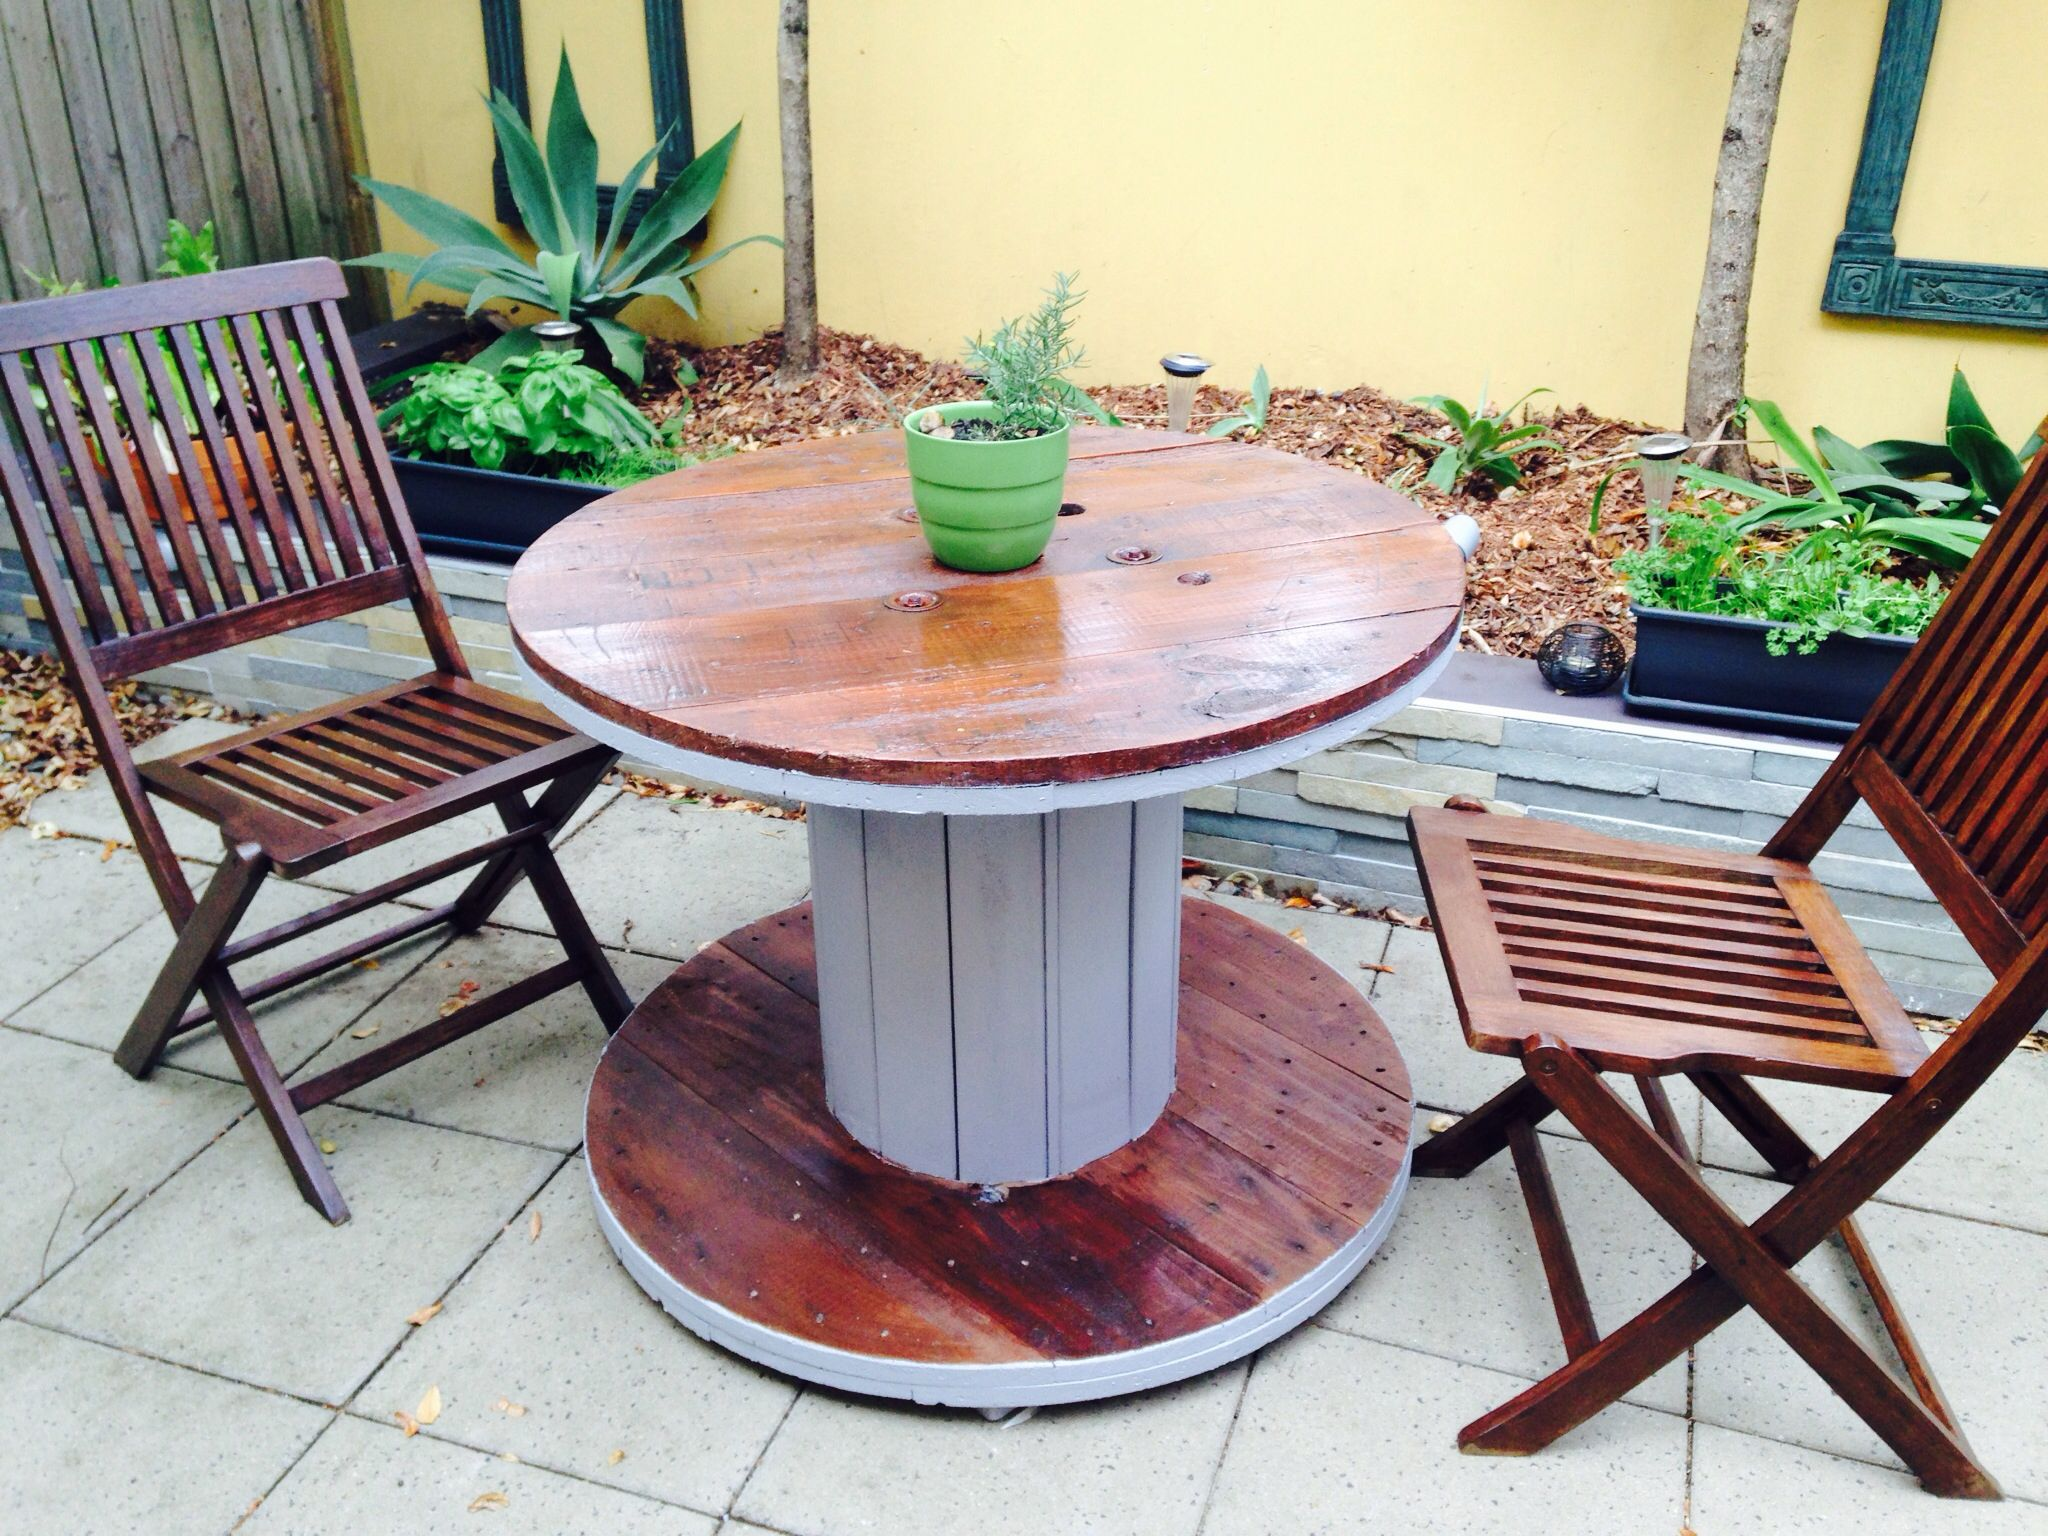 DIY Cable Spool Table